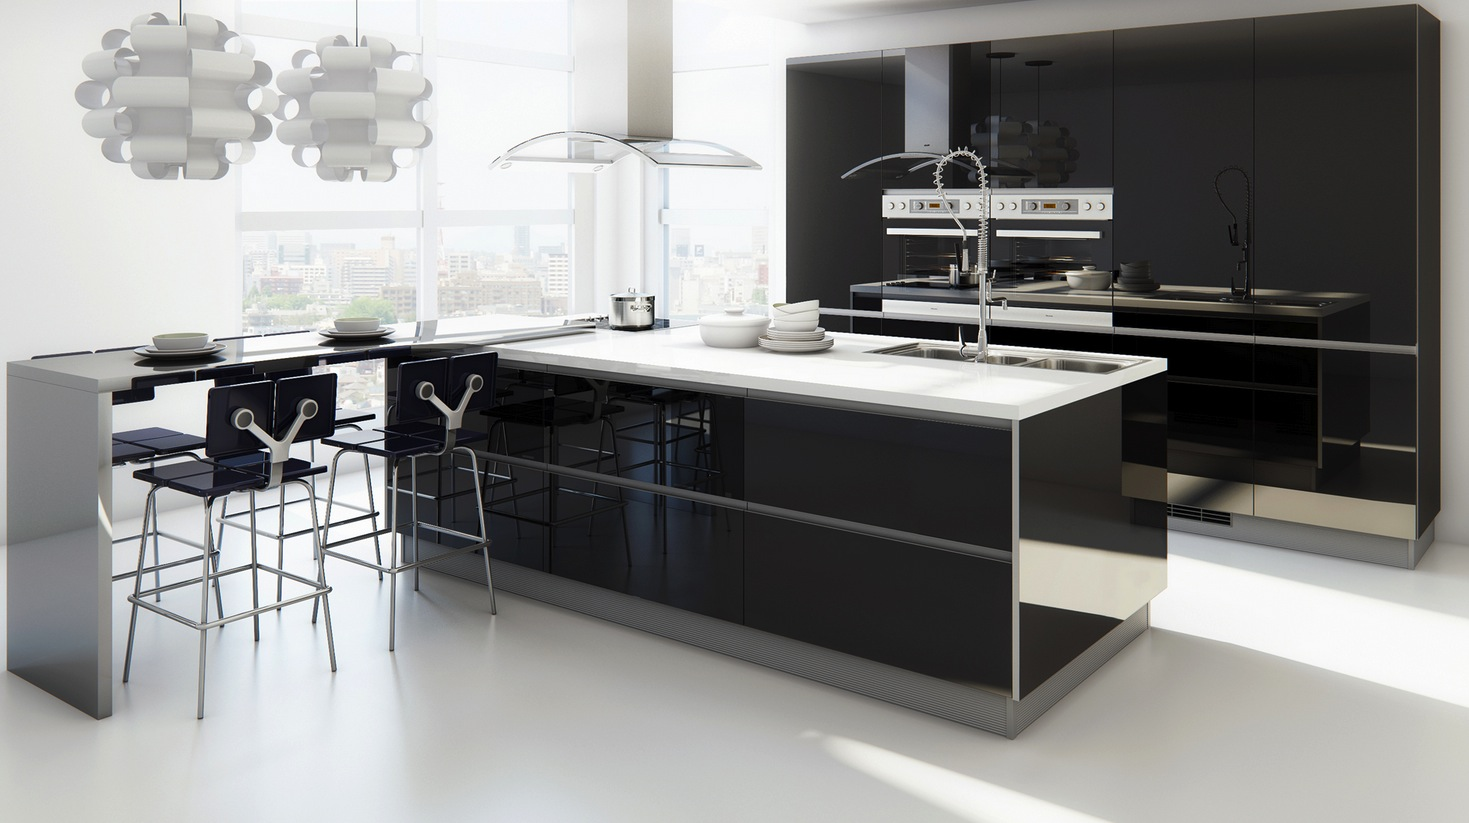 12 modern eat in kitchen designs - Modern Kitchen